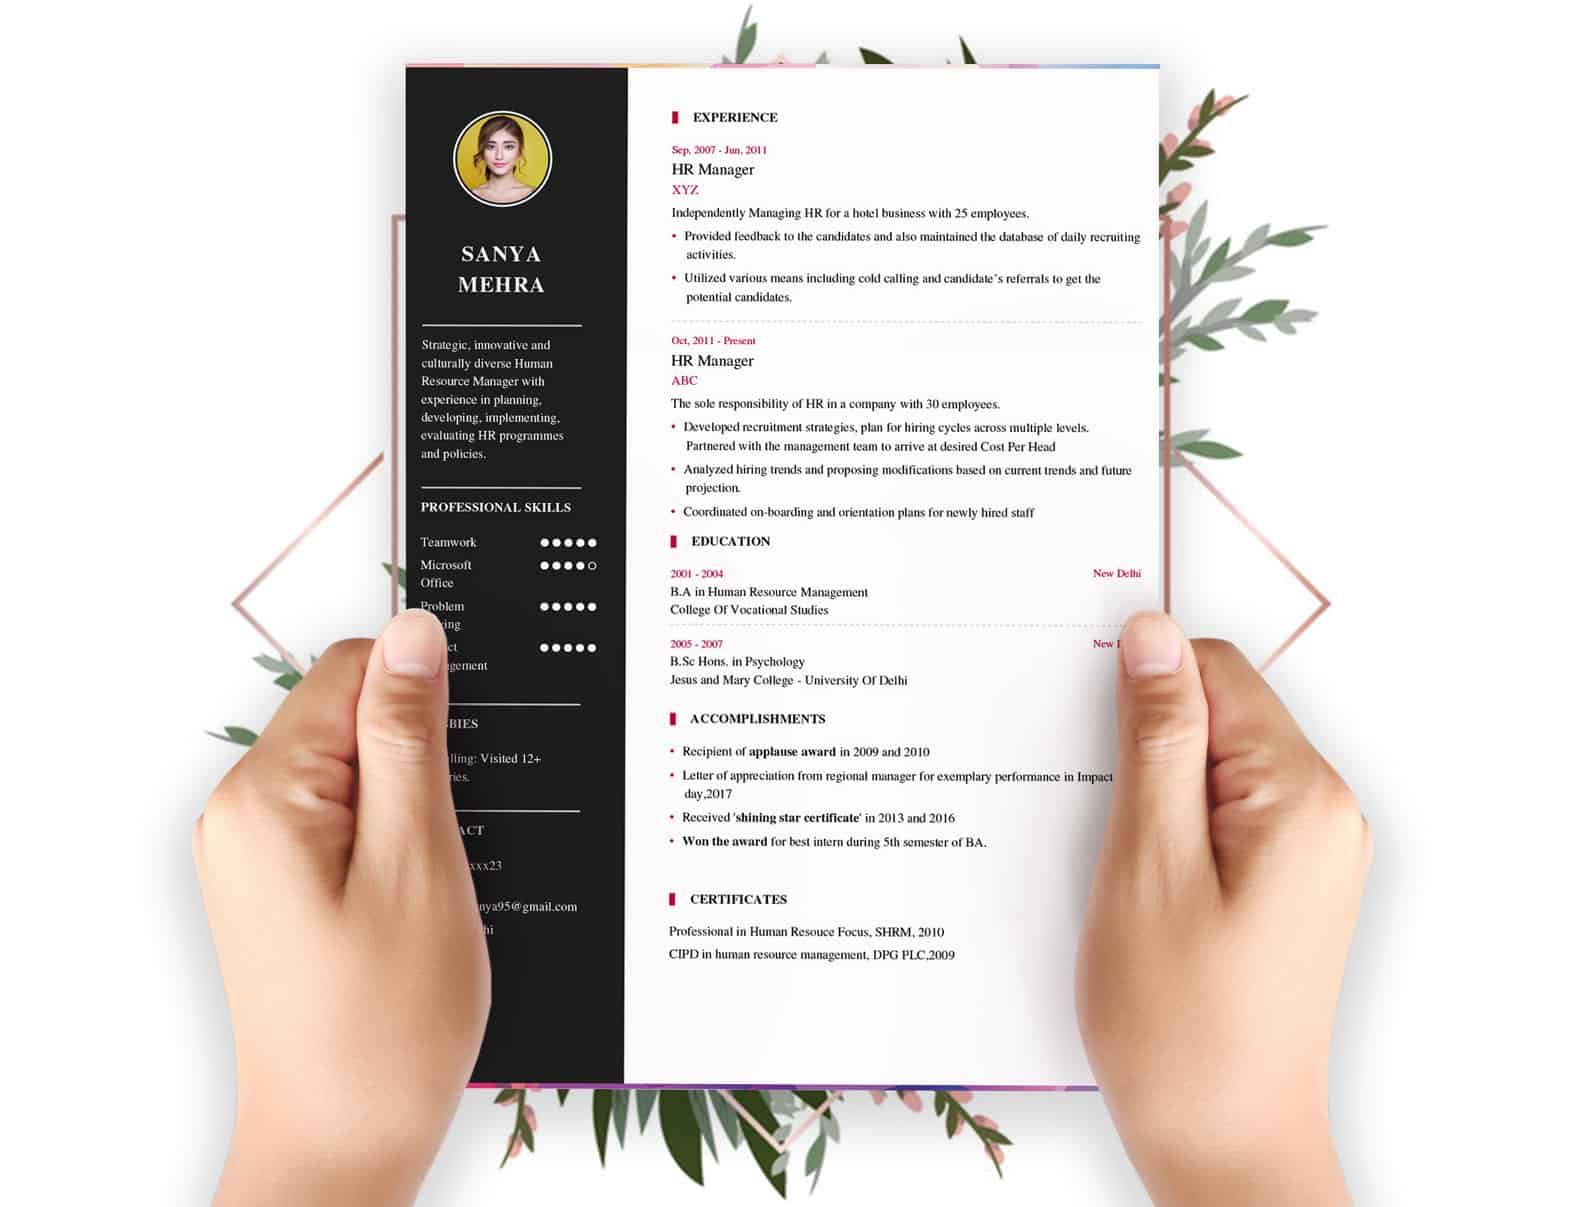 resume builder my format free and job board create for template company minimalist word Resume Create Resume For Free And Download